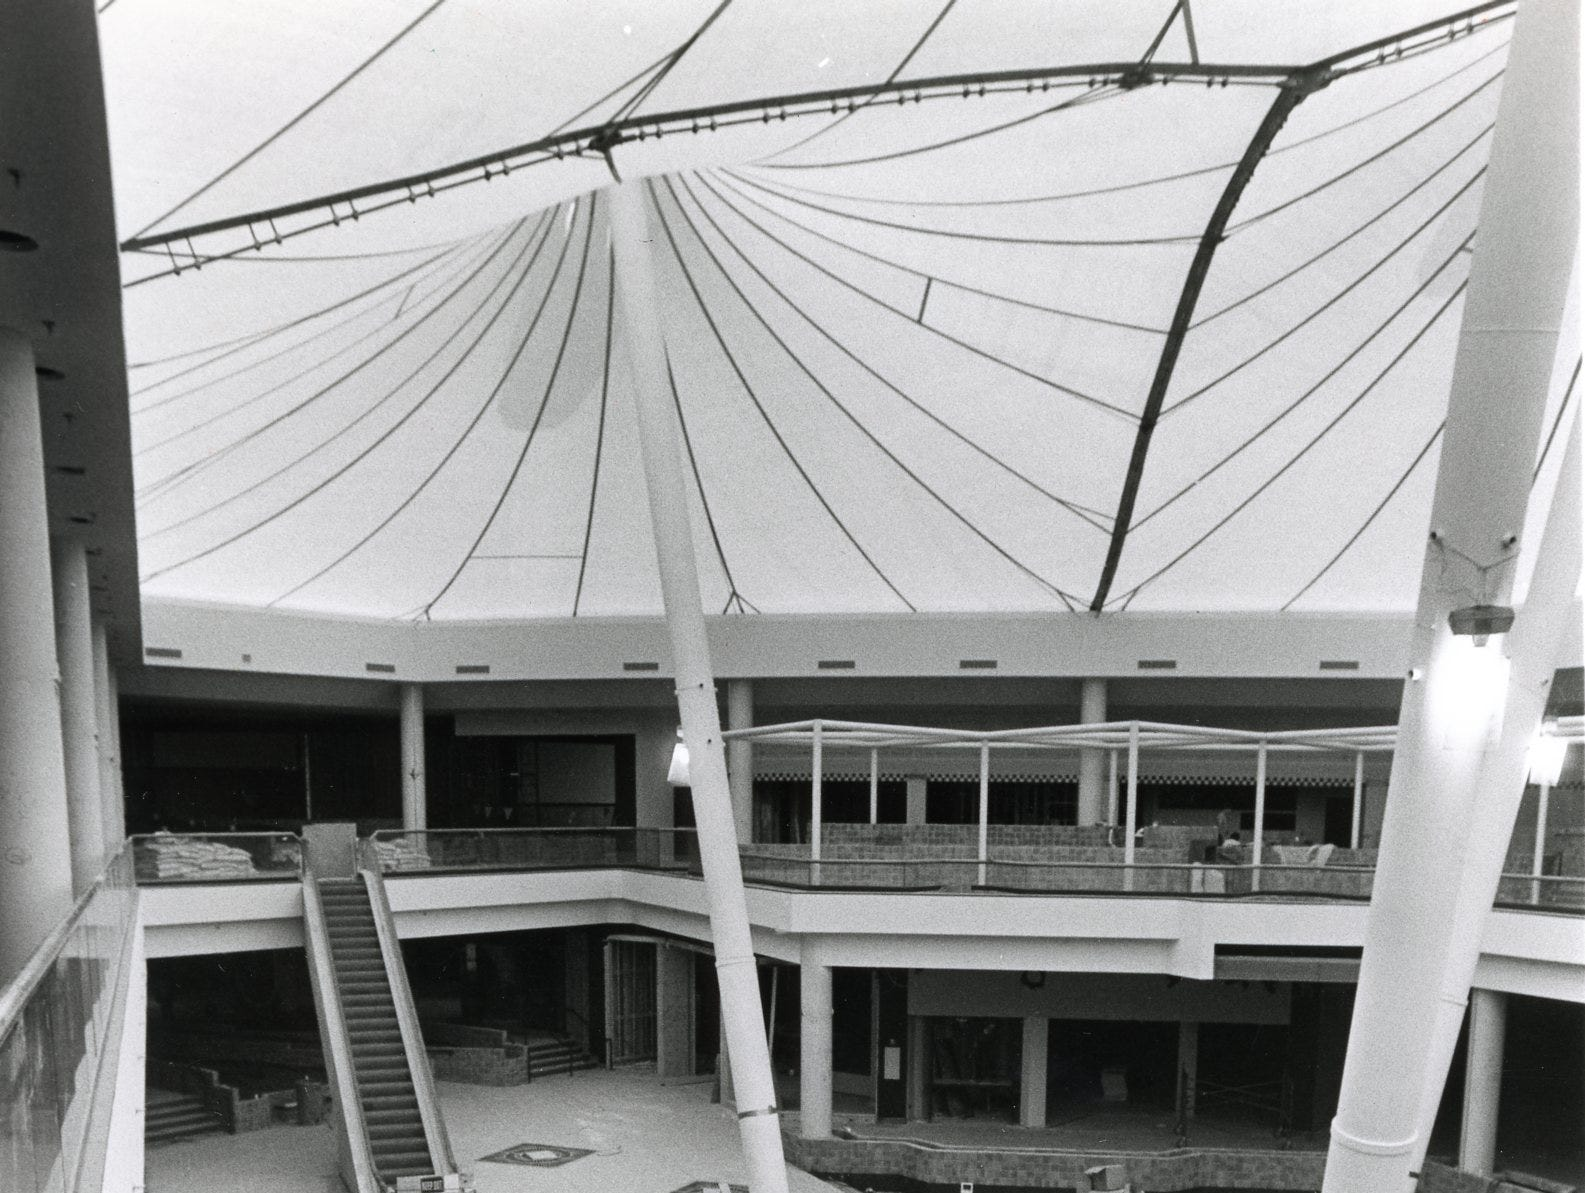 East Towne Mall construction, July 1984.